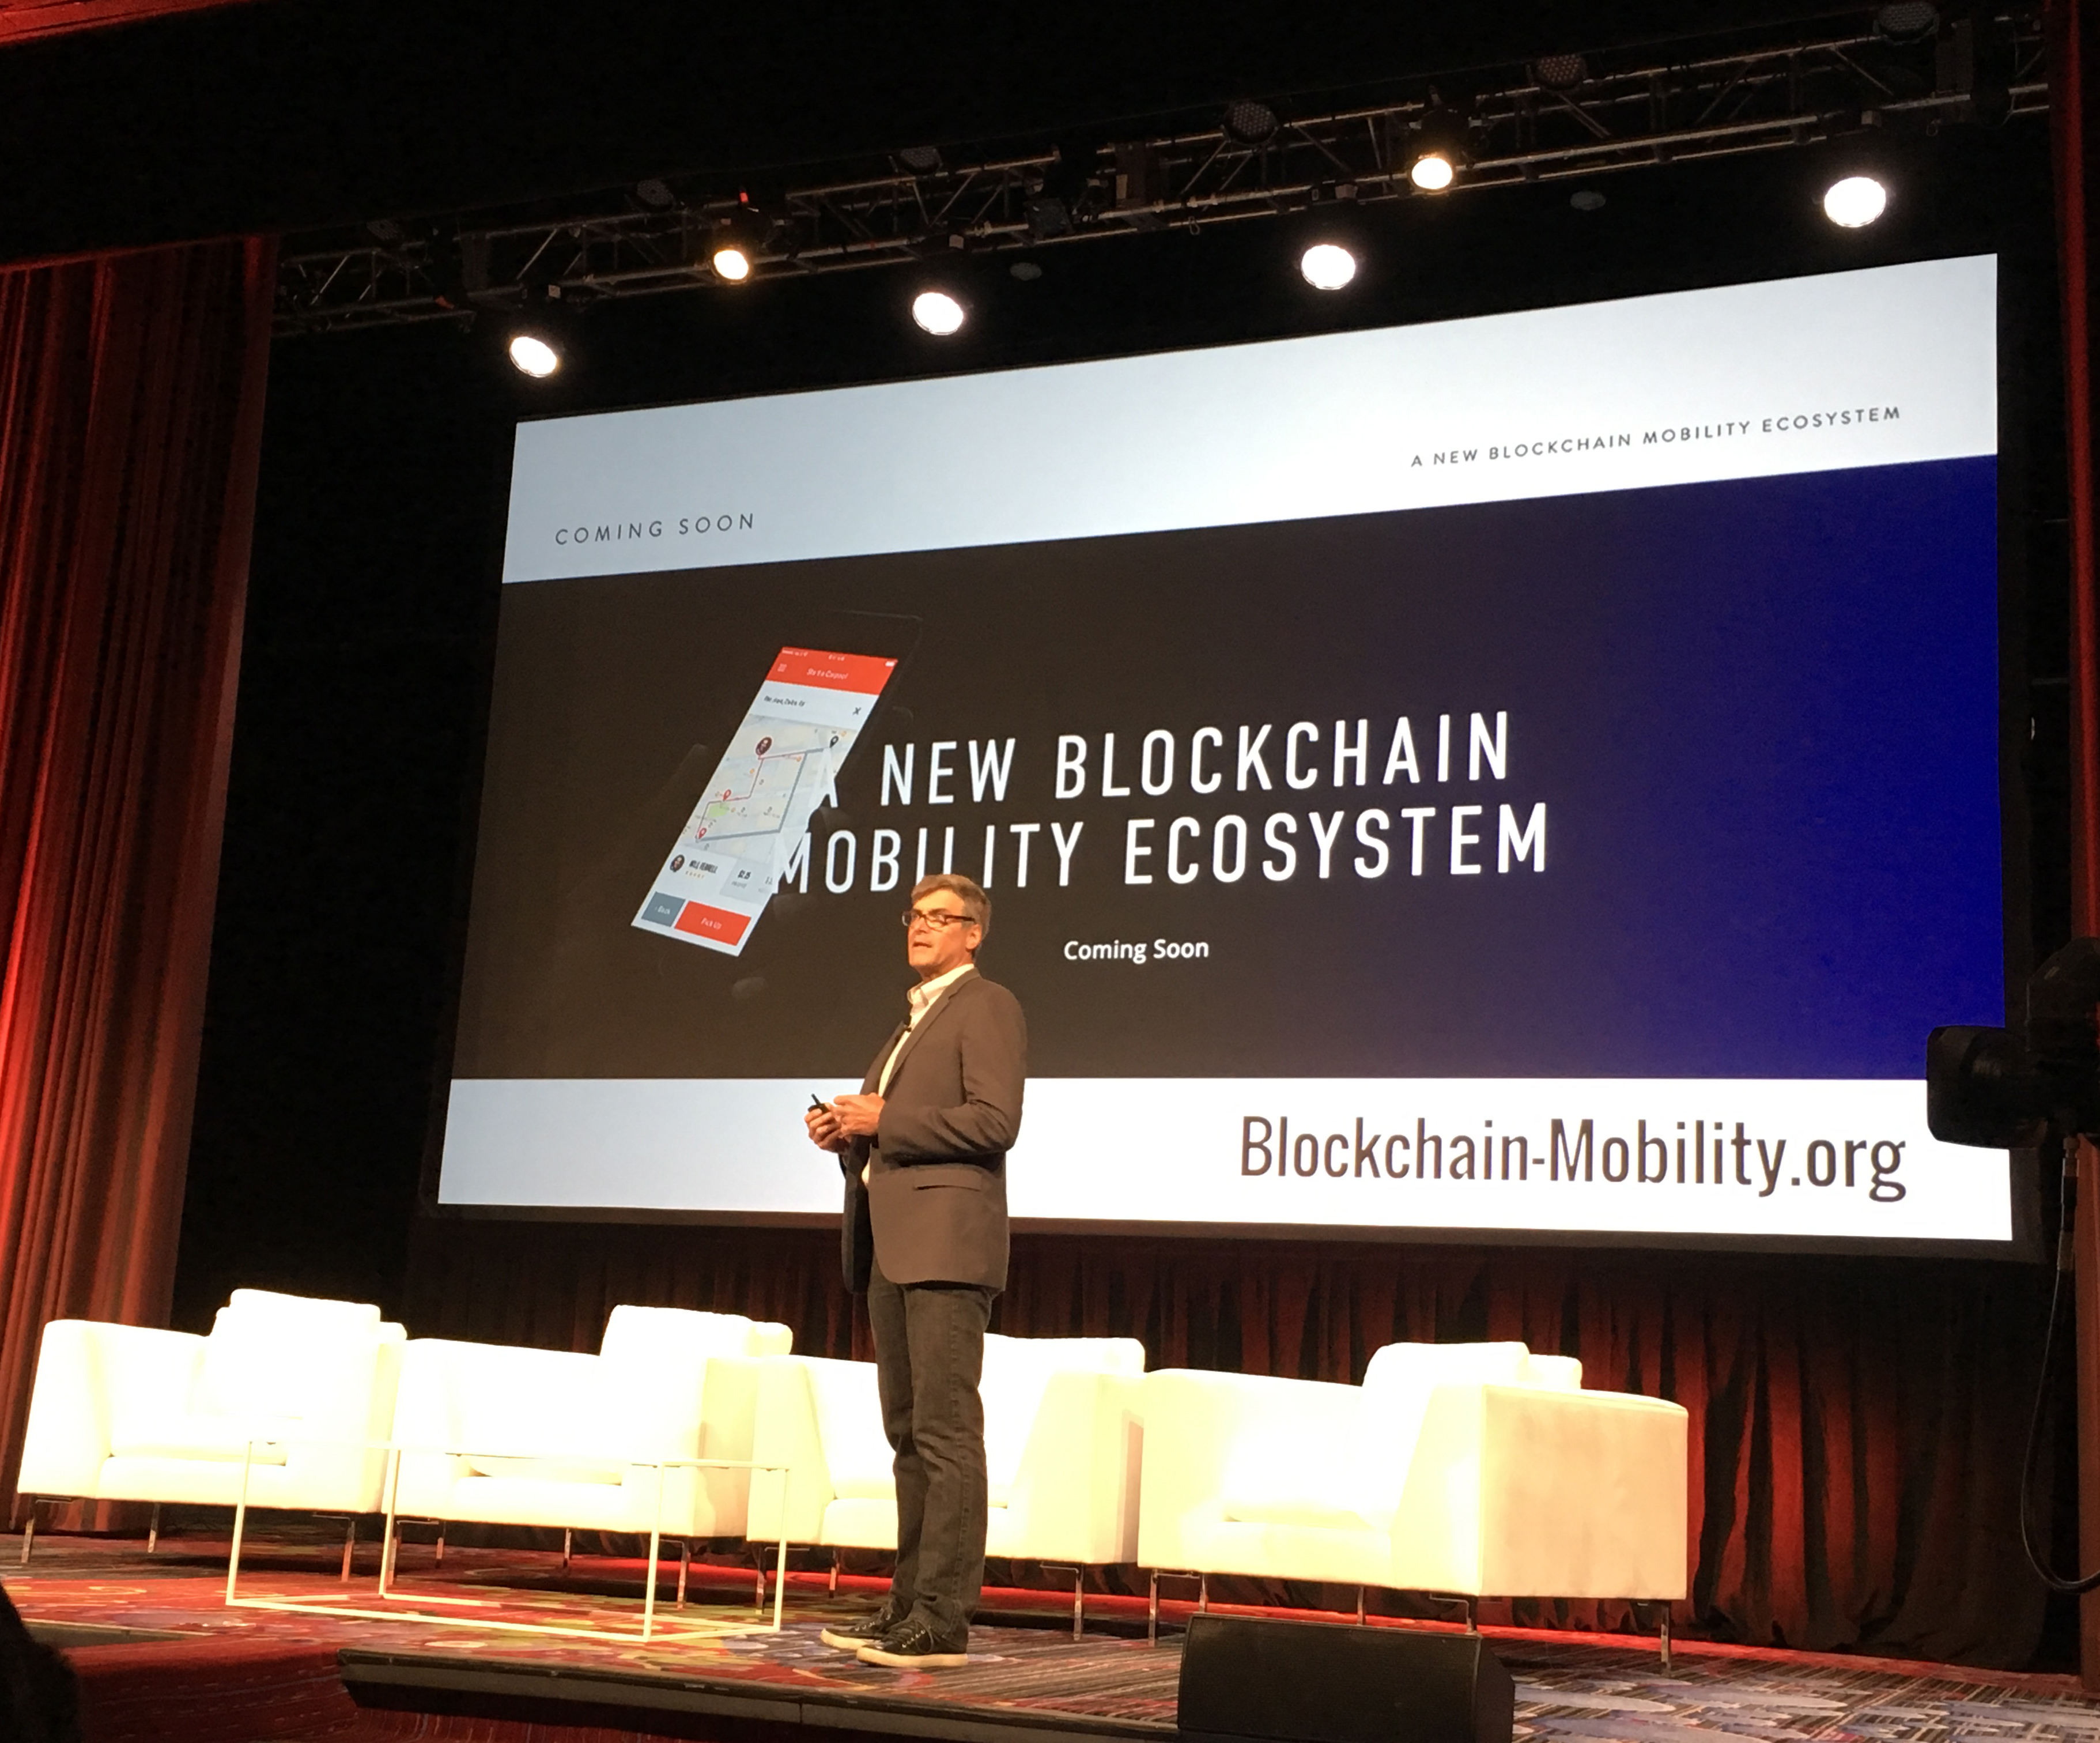 TRI Explores Blockchain Technology for Development of New Mobility Ecosystem